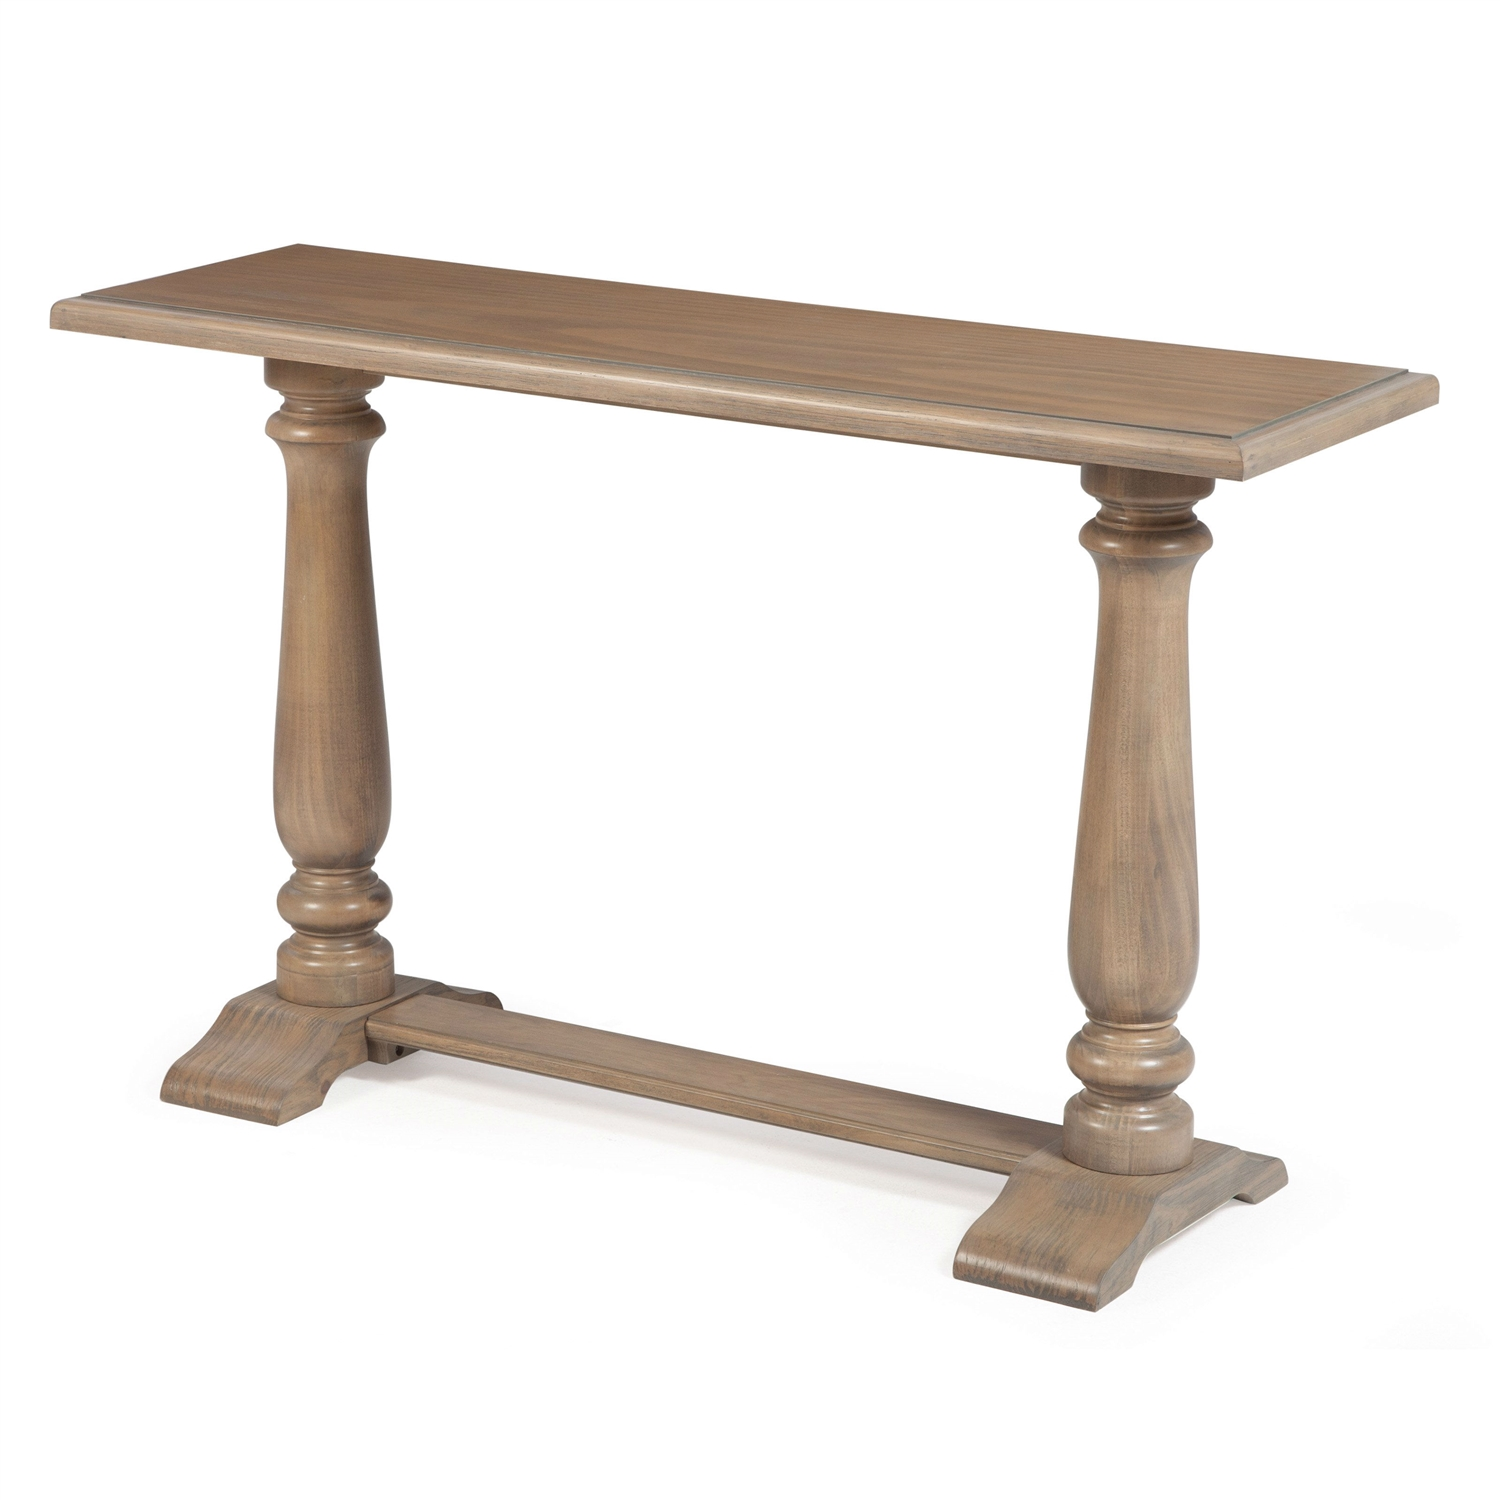 Driftwood Contemporary Clic Console Sofa Table With Pedestal Legs